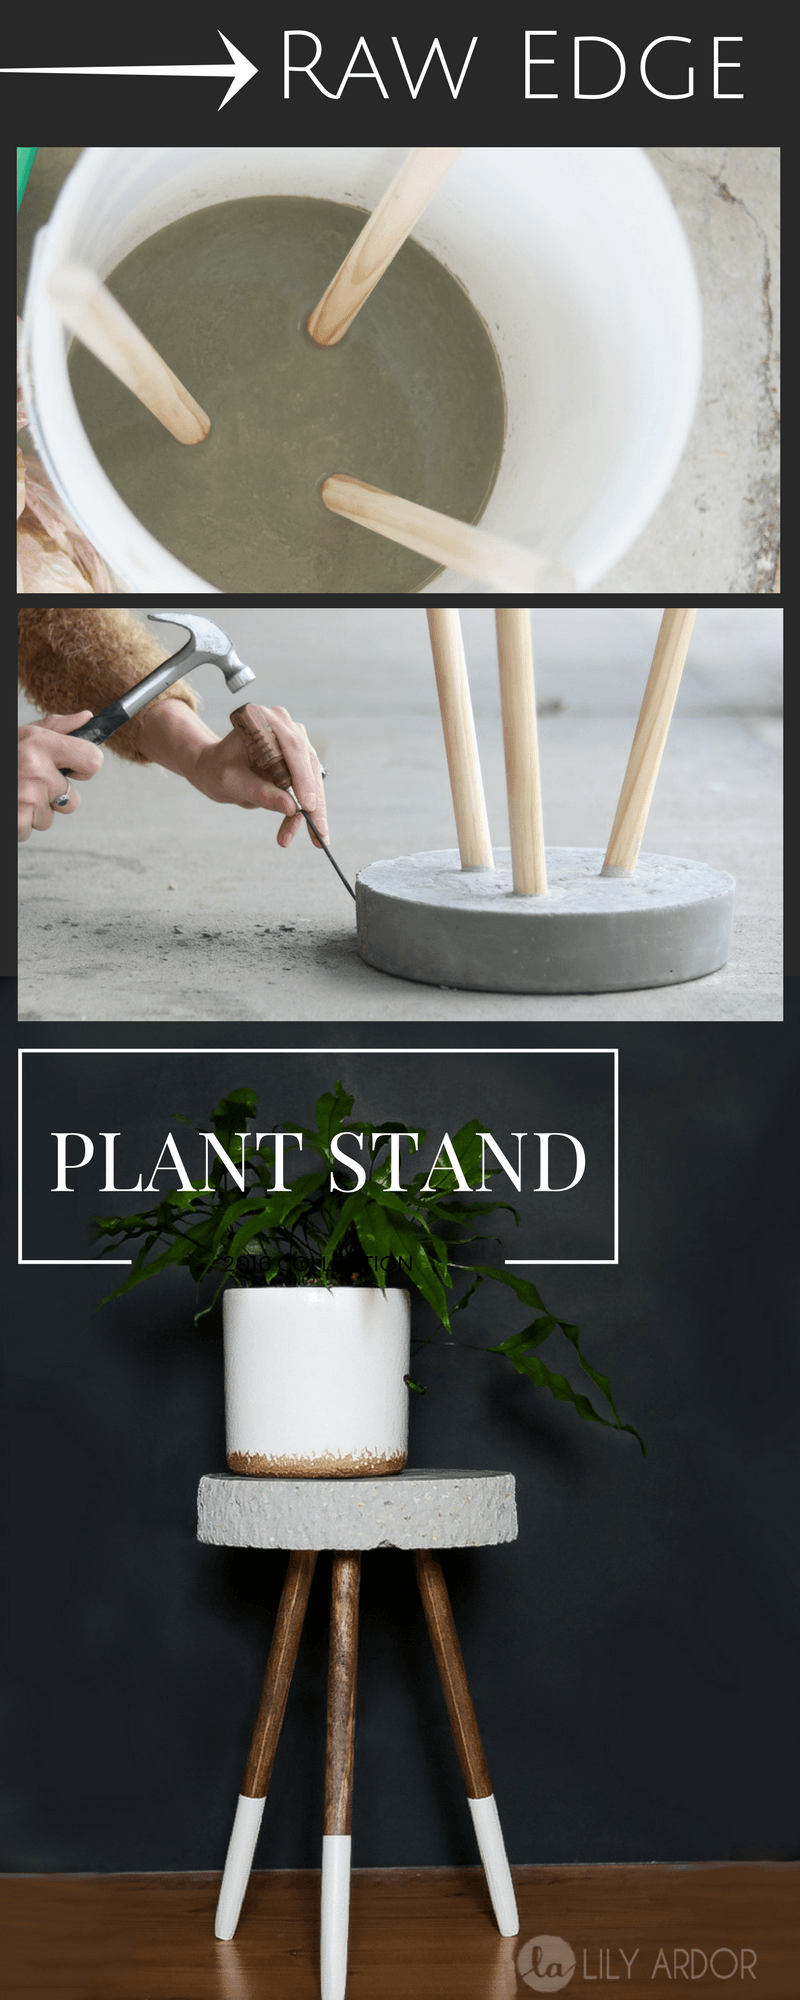 Raw Edge Concrete Plant Stand #diyfurniture